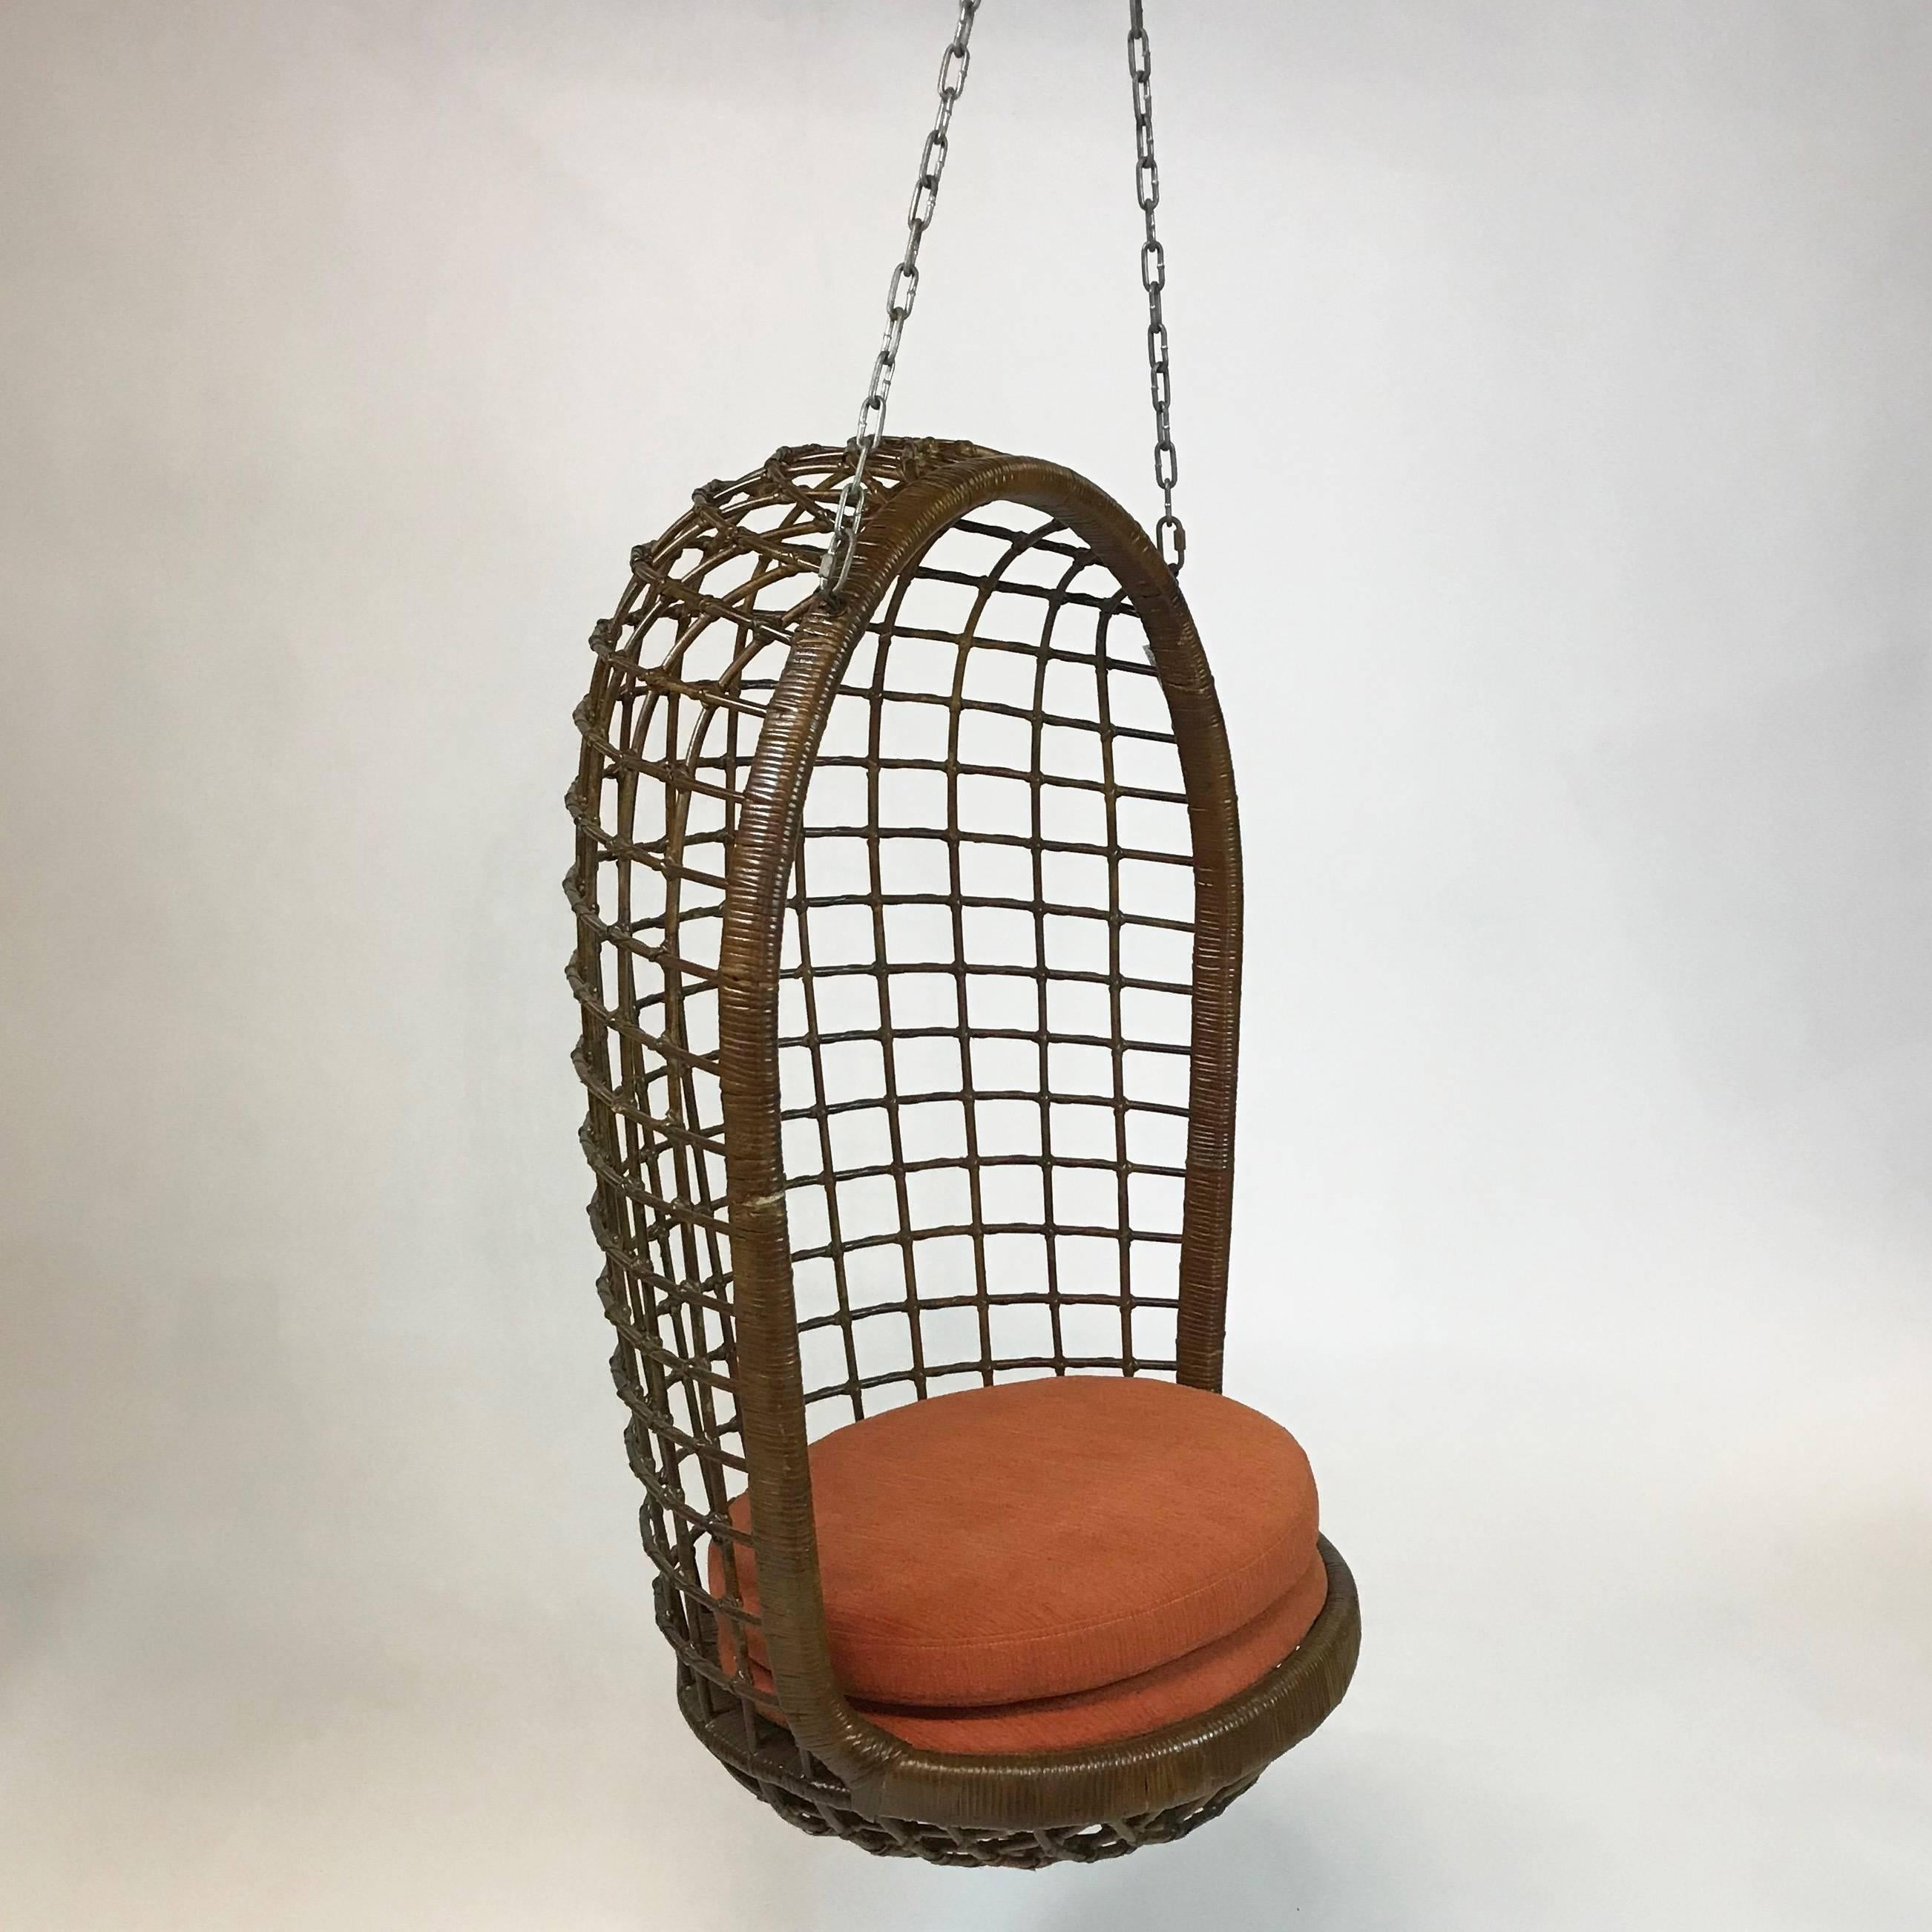 Wicker Egg Chairs For Sale Mid Century Woven Rattan Hanging Egg Chair